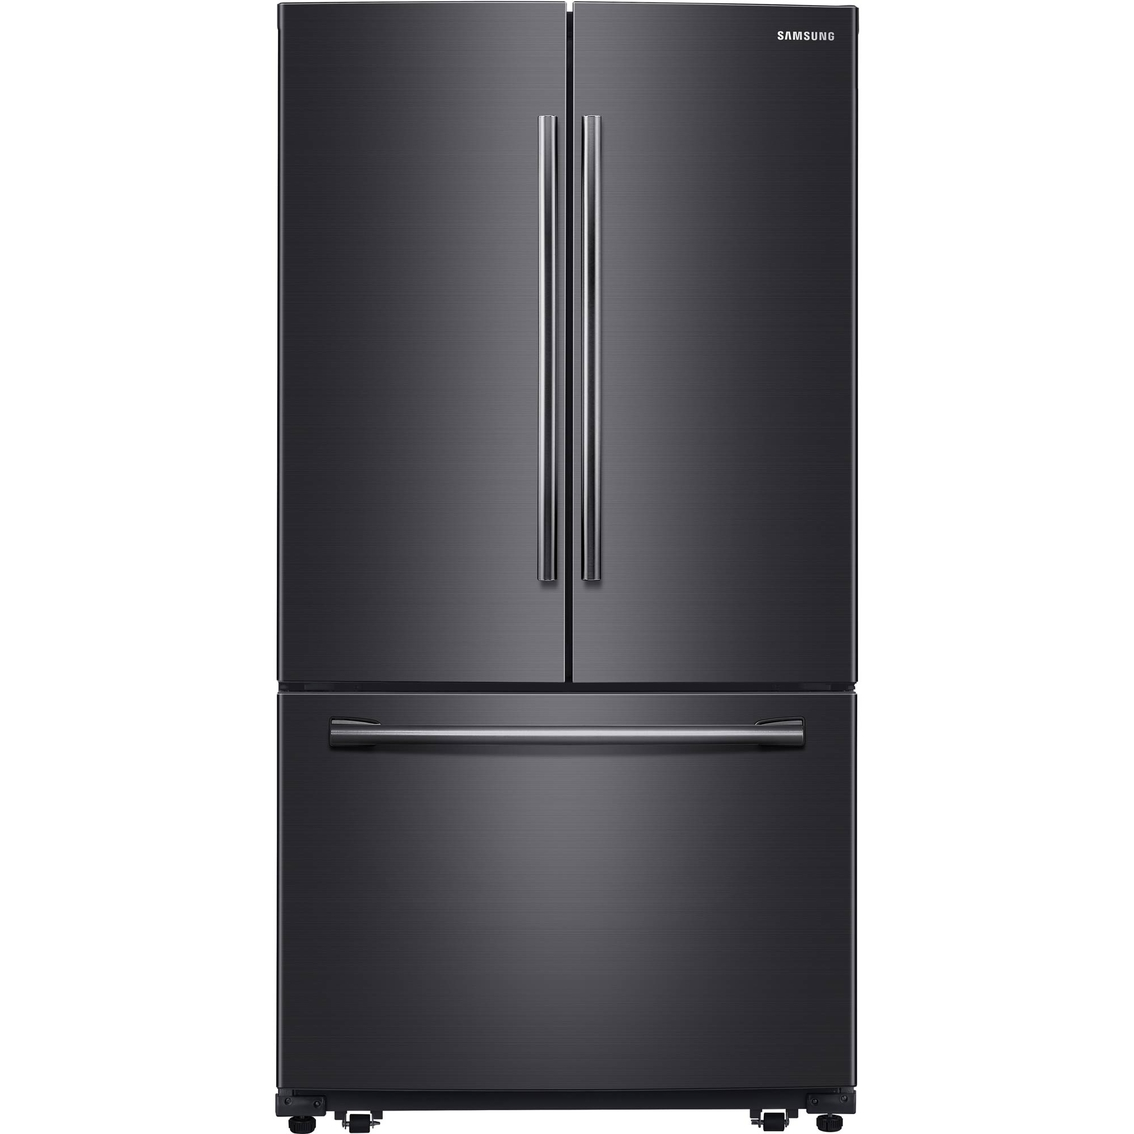 Samsung 26 Cu Ft French Door Refrigerator With Filtered Ice Maker